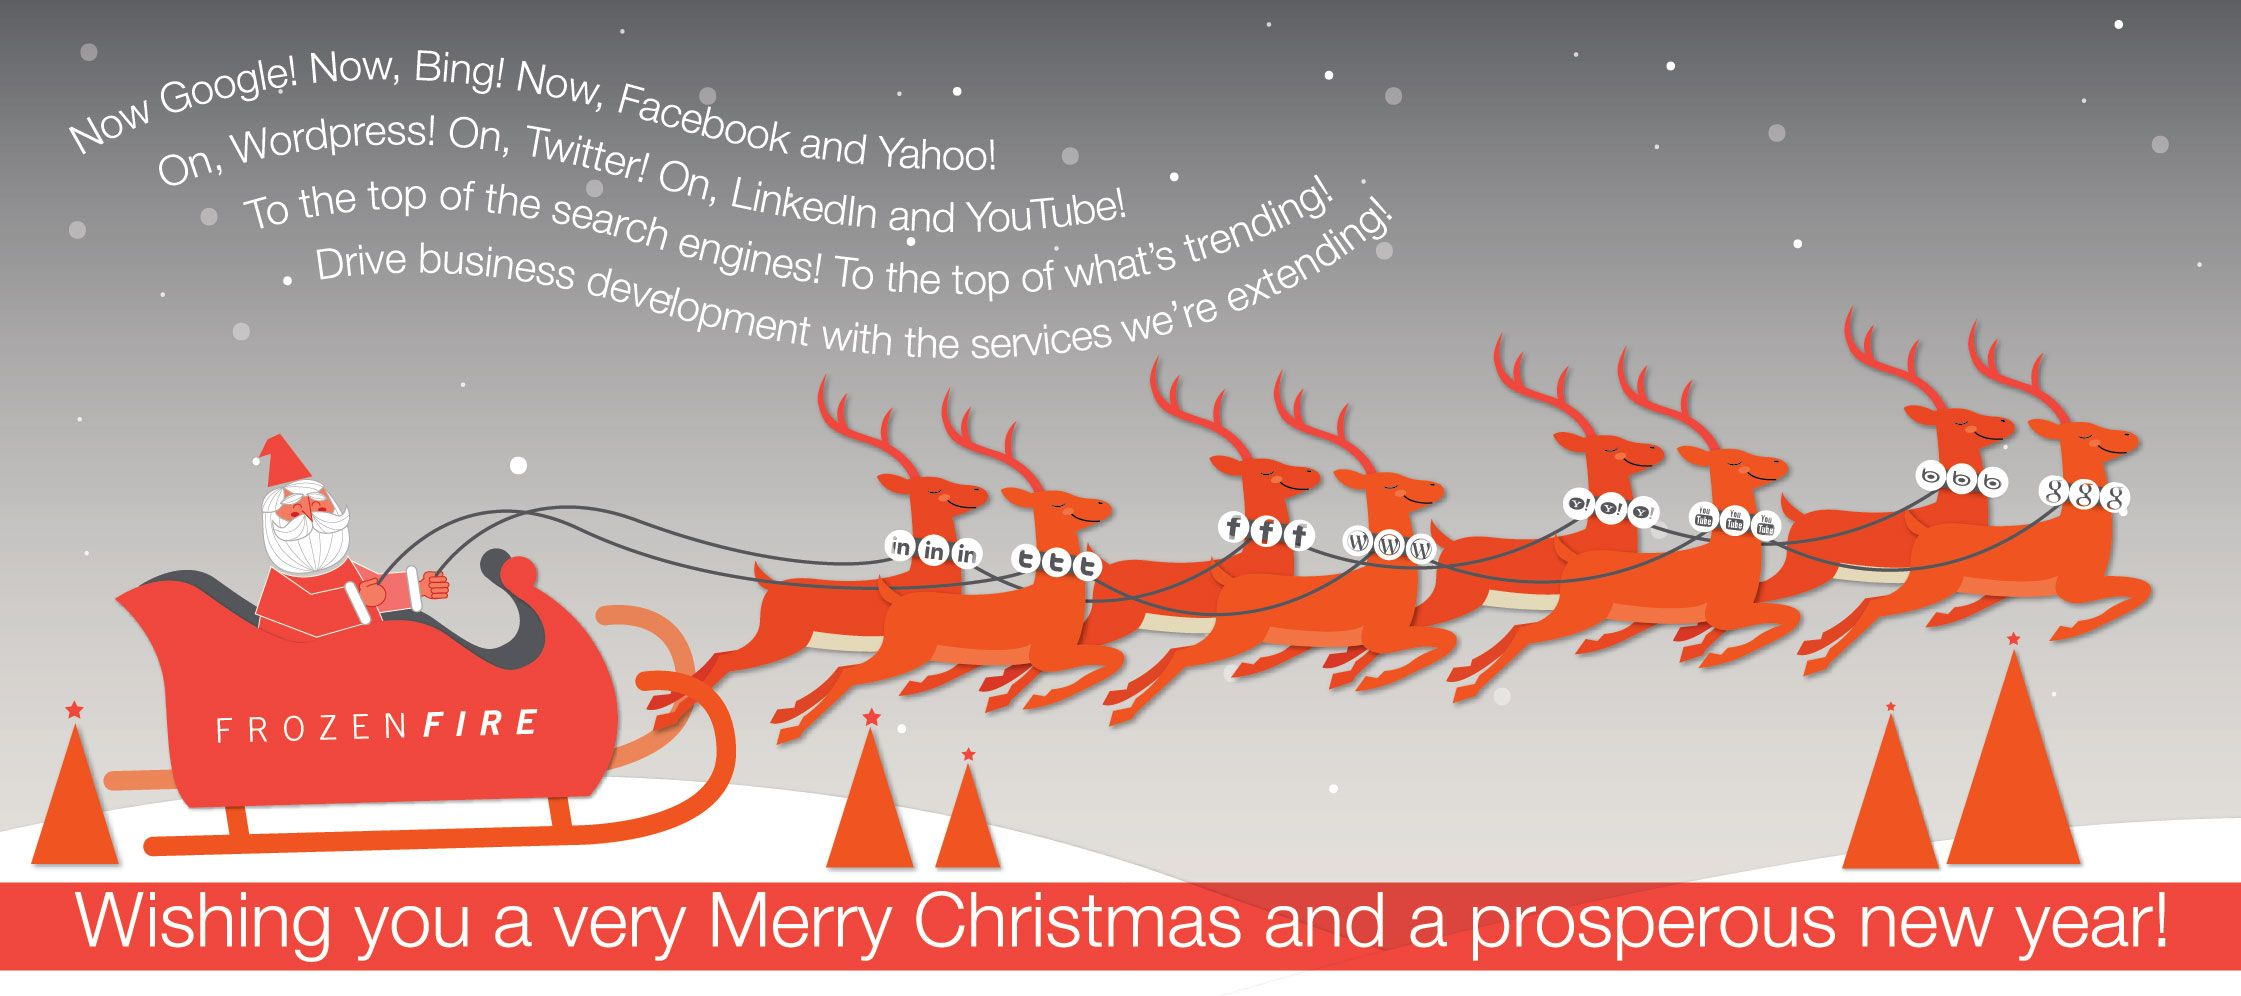 Digital Business Christmas Cards Image collections - Card Design And ...